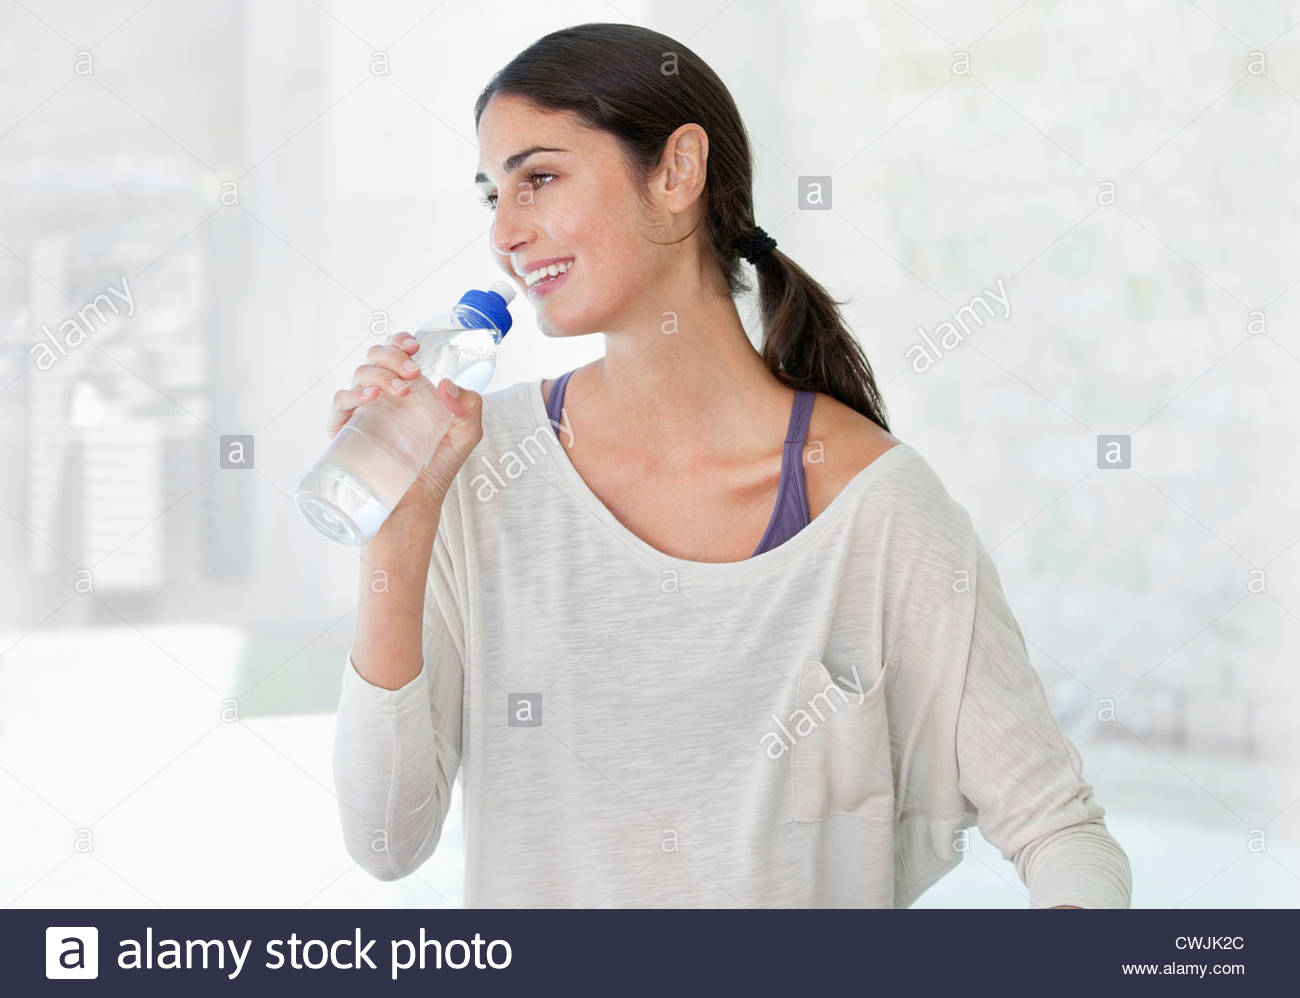 Smiling woman drinking from water bottle - Stock Image